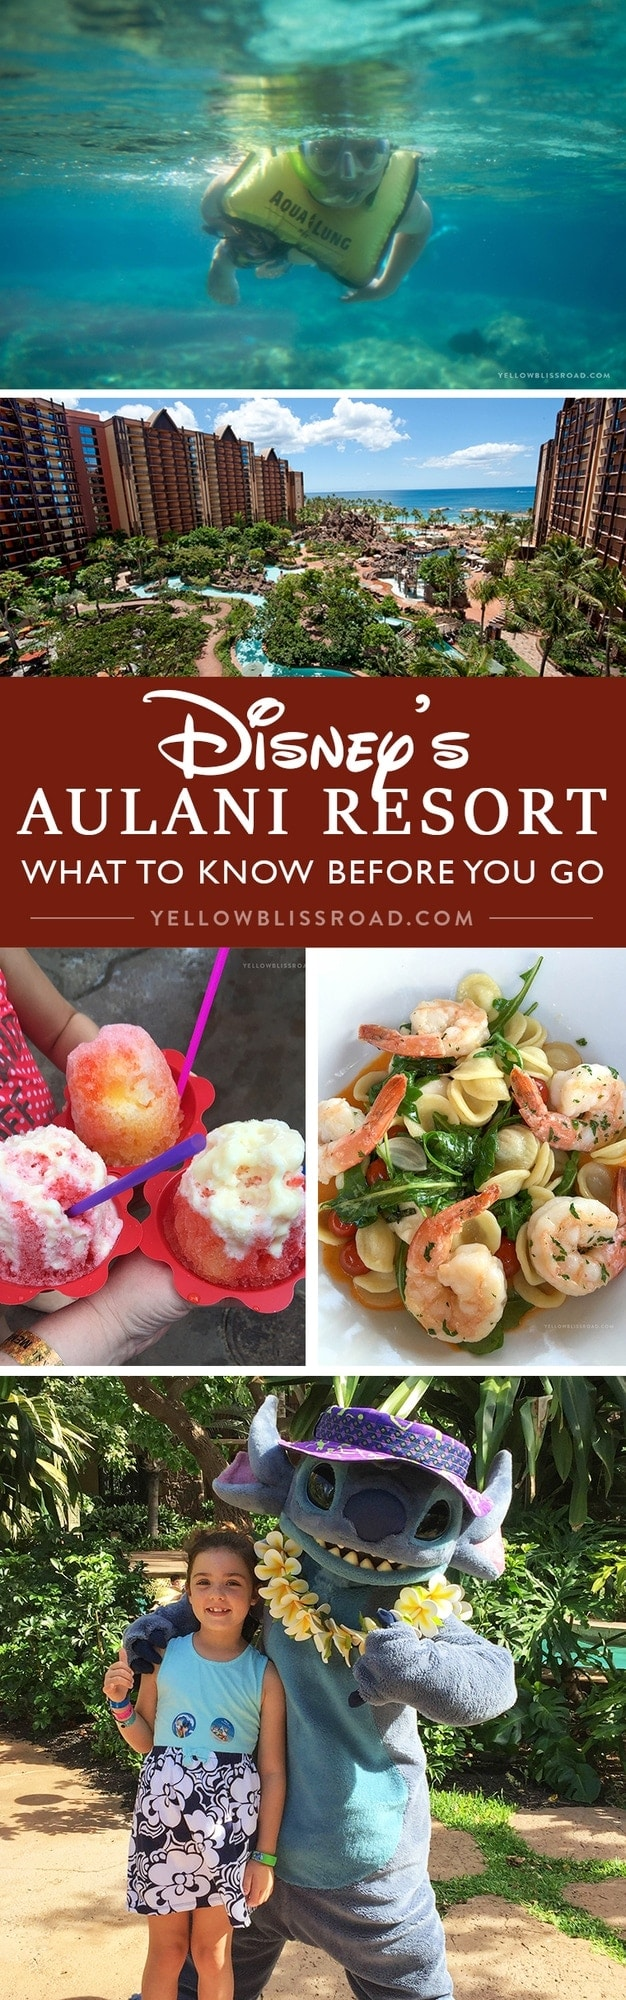 Disney's Aulani Resort in Hawaii - What to Know Before You go! Tips for your Hawaiian vacation